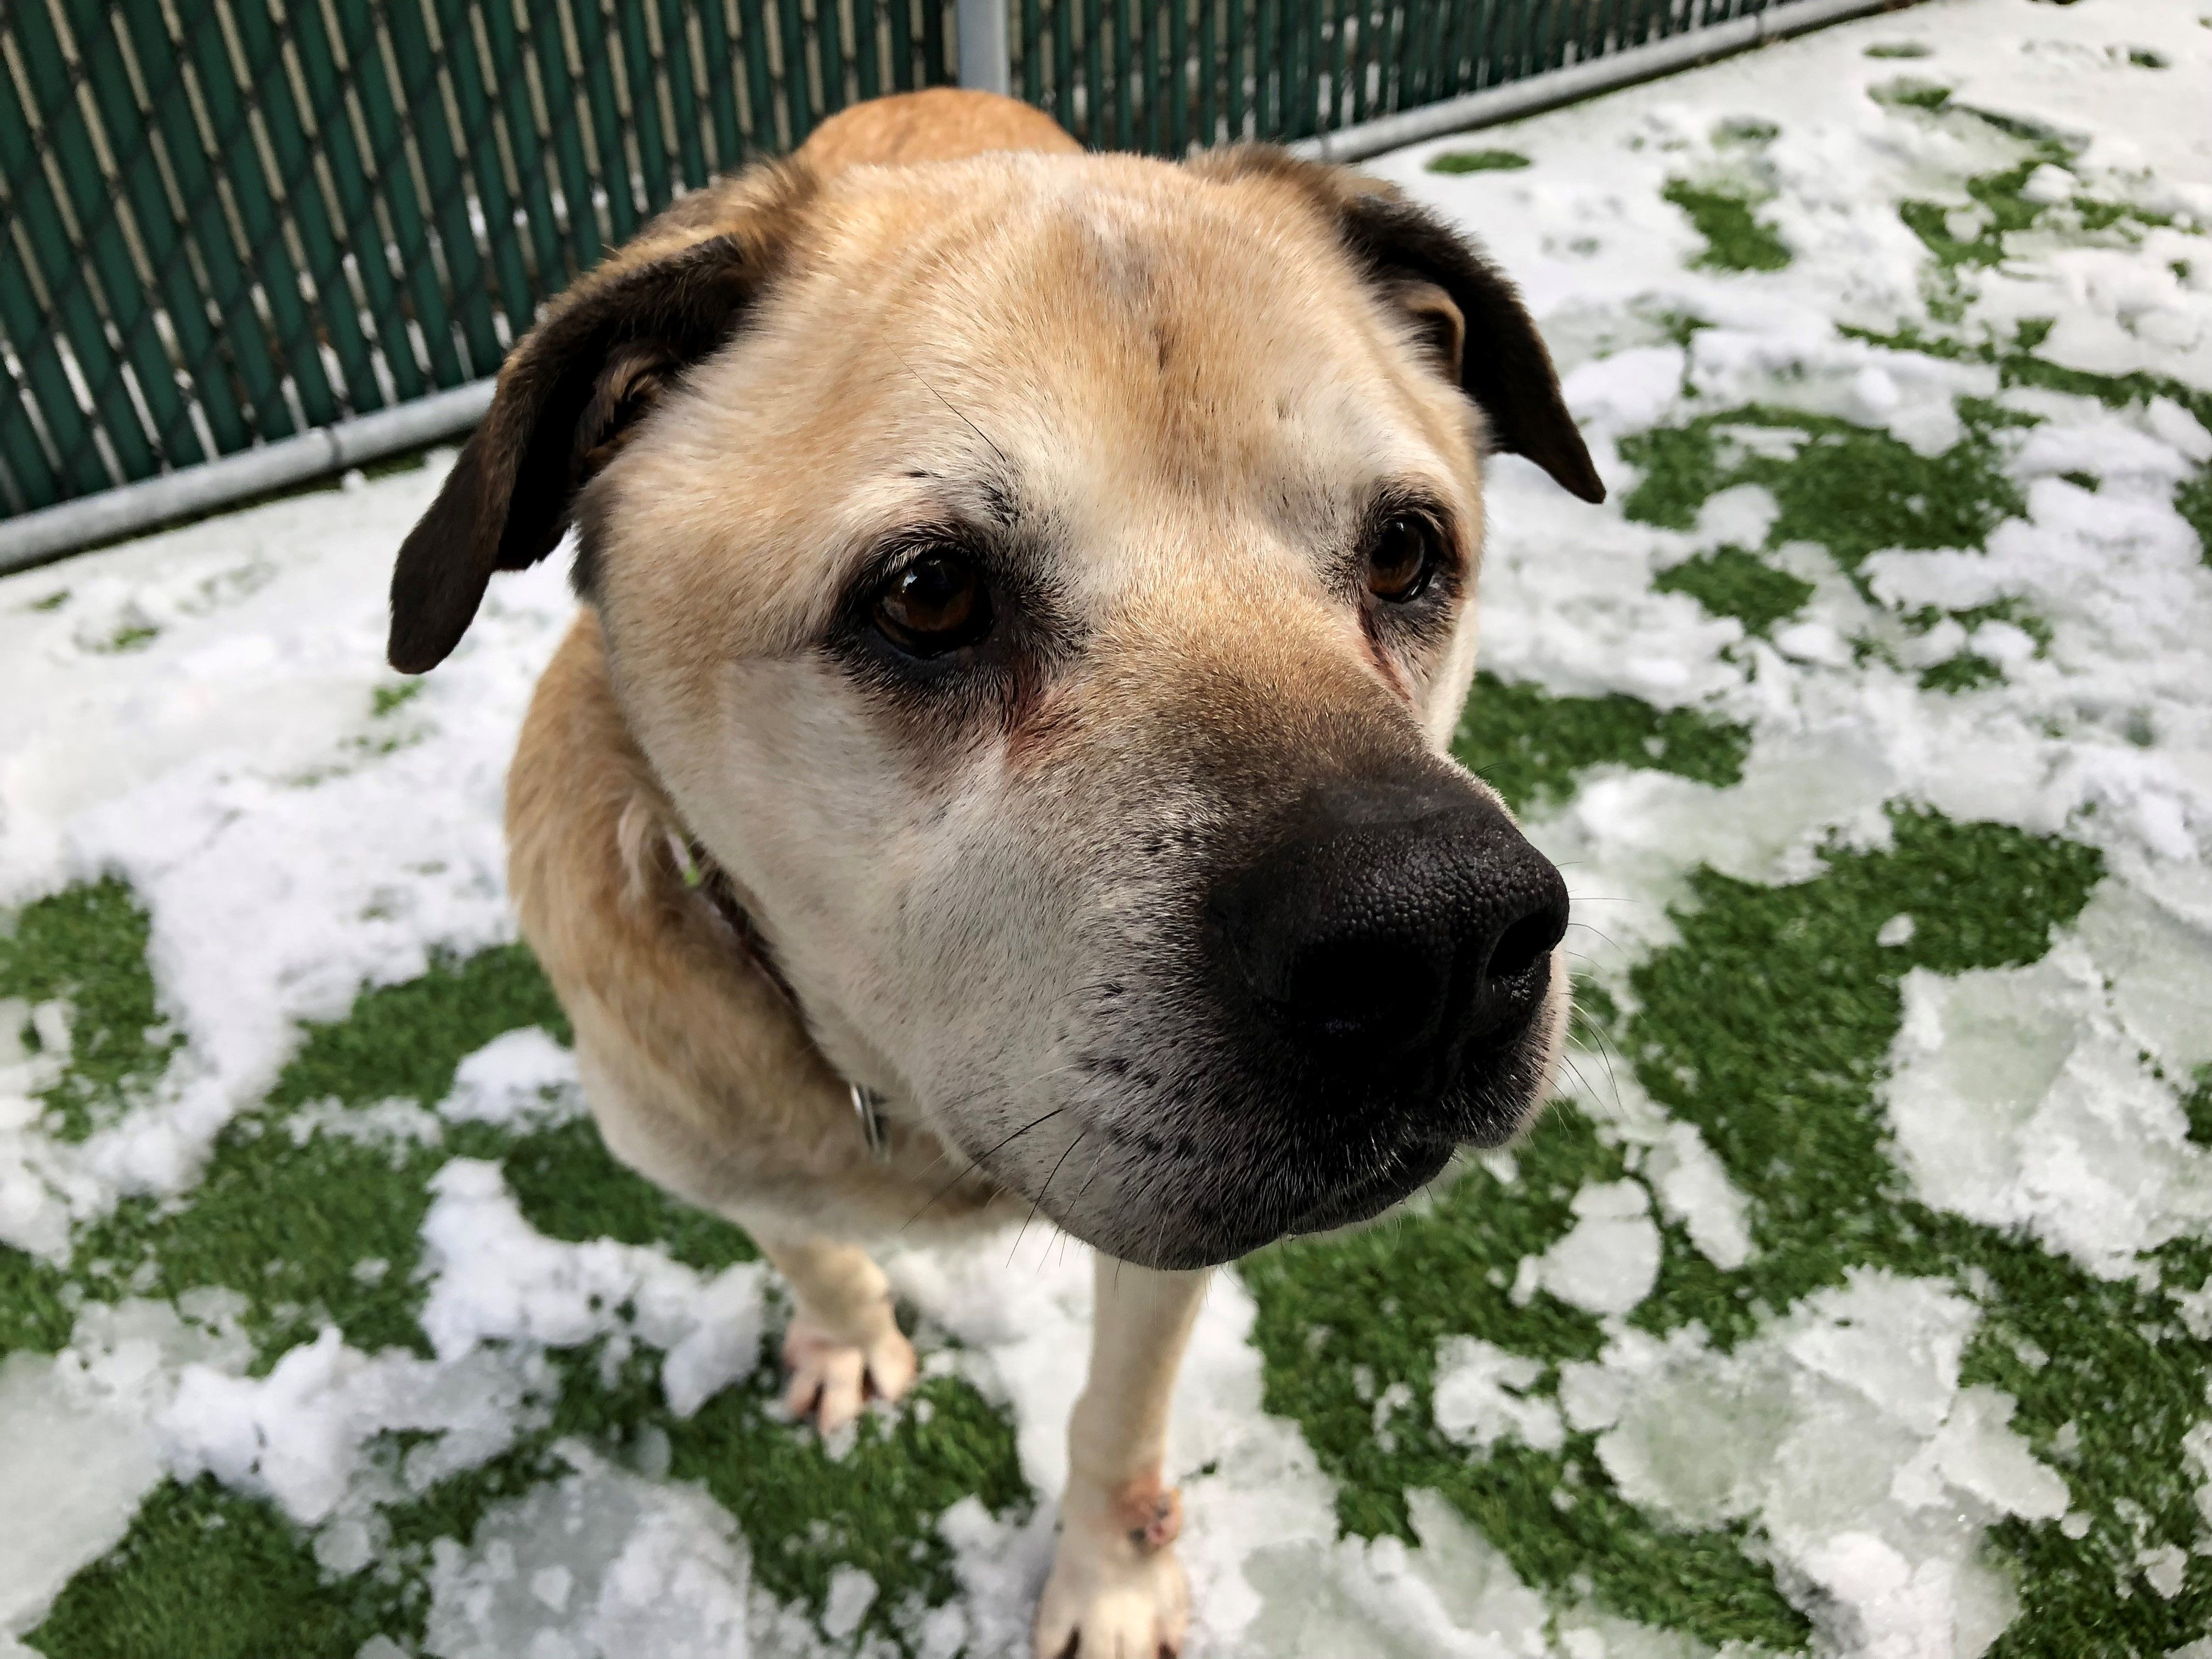 2 13 19 Scrappy Is Removed From The Kill List At Nyc Acc For 2 14 19 No Updates Given Pls Continue Sharing Ij2 Scrappy Dog Allergies Animals Pet Care